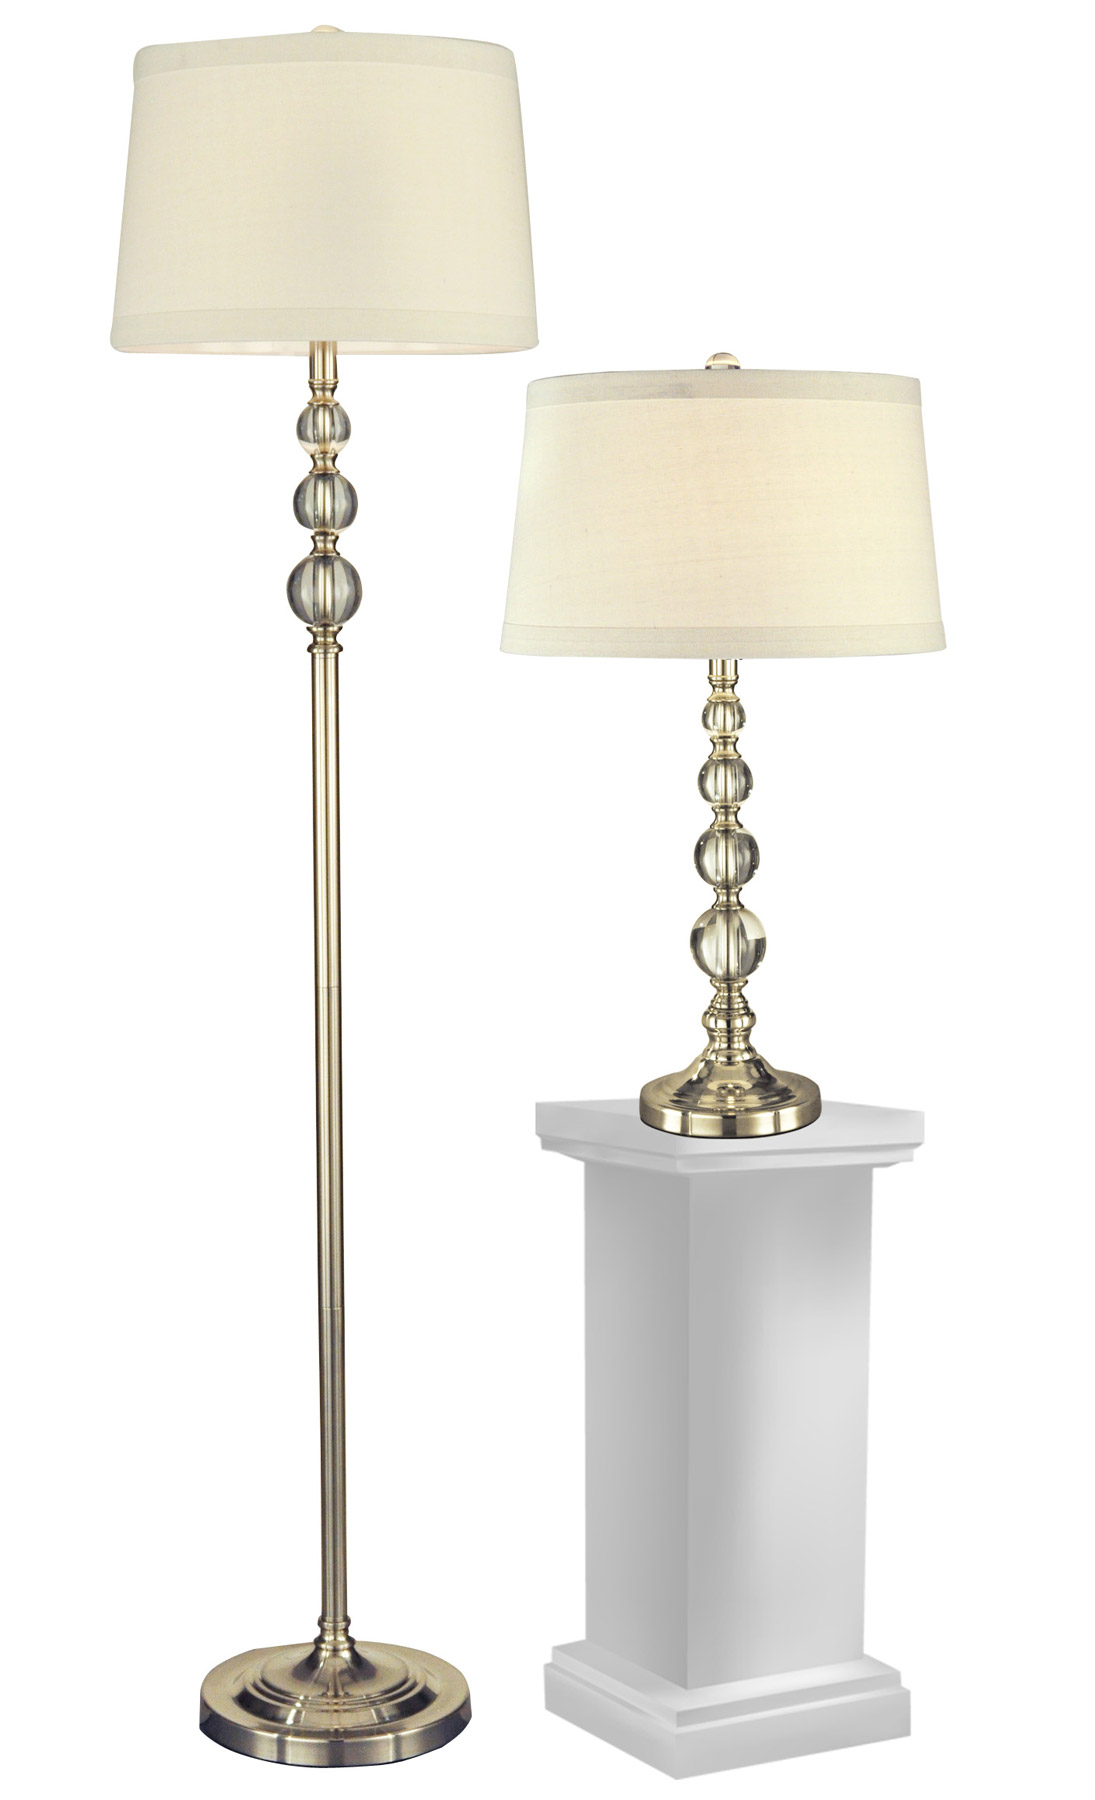 Tiffany gc12290 crystal optic orb table and floor lamp set 1 of each dale tiffany gc12290 crystal optic orb table and floor lamp set 1 of each aloadofball Image collections